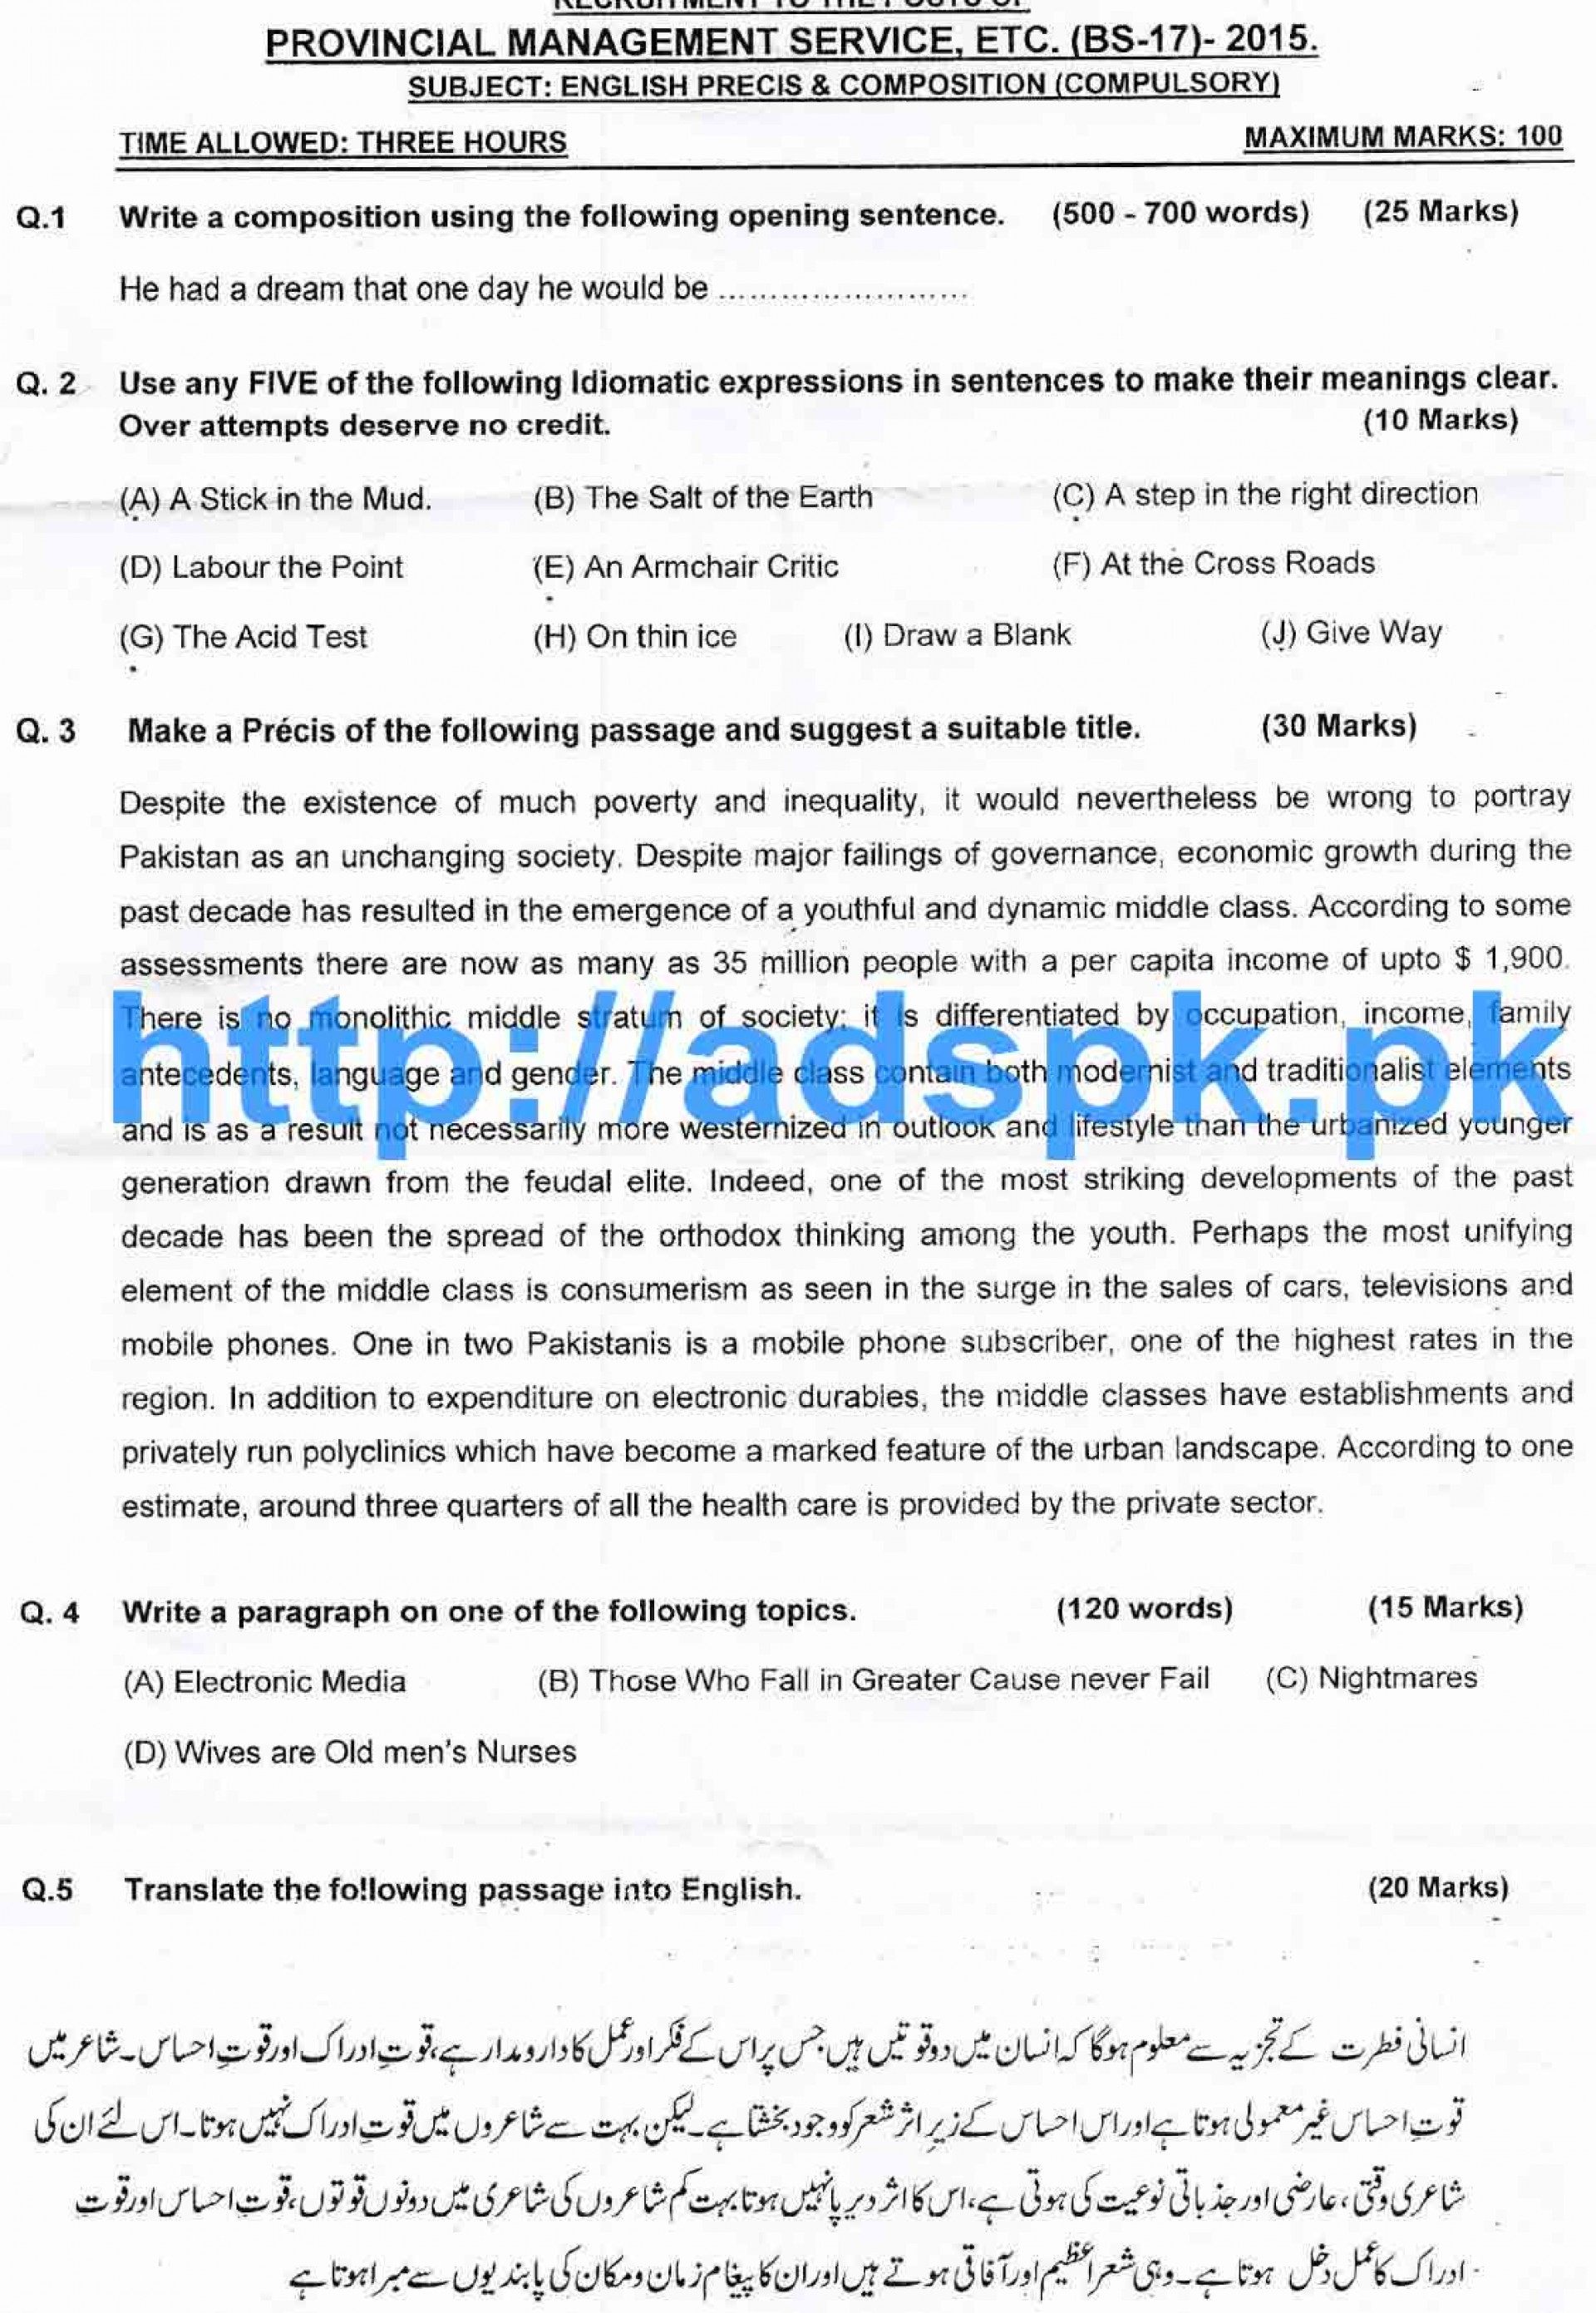 006 Determination Essay Latest Govt Jobs Pms Papers English Precise Composition Compulsory Provincial Management Service Must Prepare Now By Ppsc Lahore Pakistan Paper Remarkable Conclusion Sample 1920